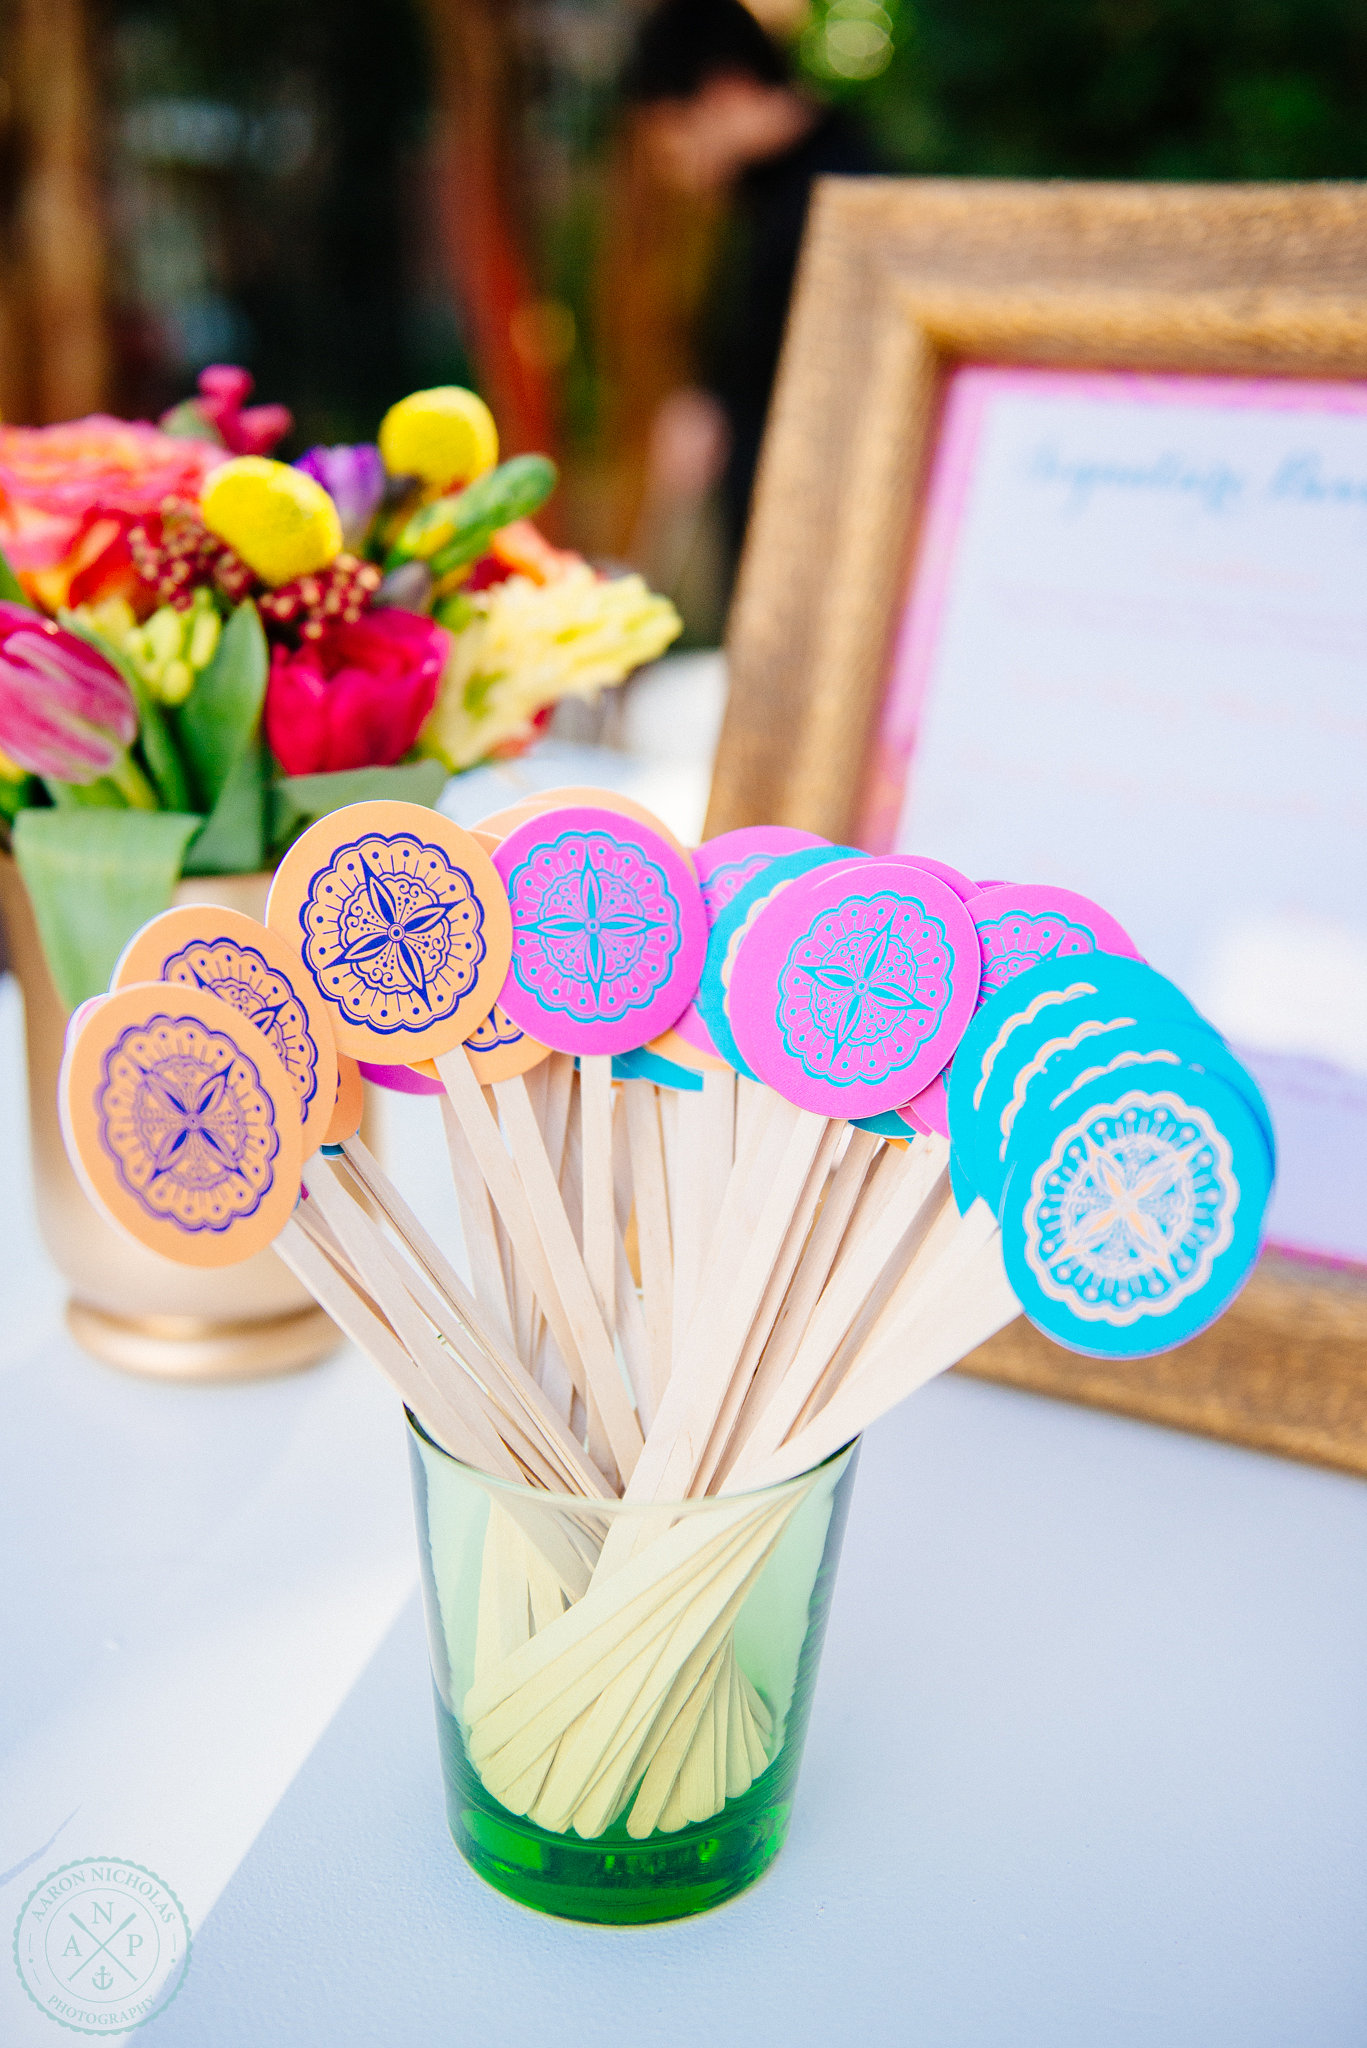 the-knot-market-mixer-drink-stirs-orange-fuchsia-teal-wedding-theme-moroccan